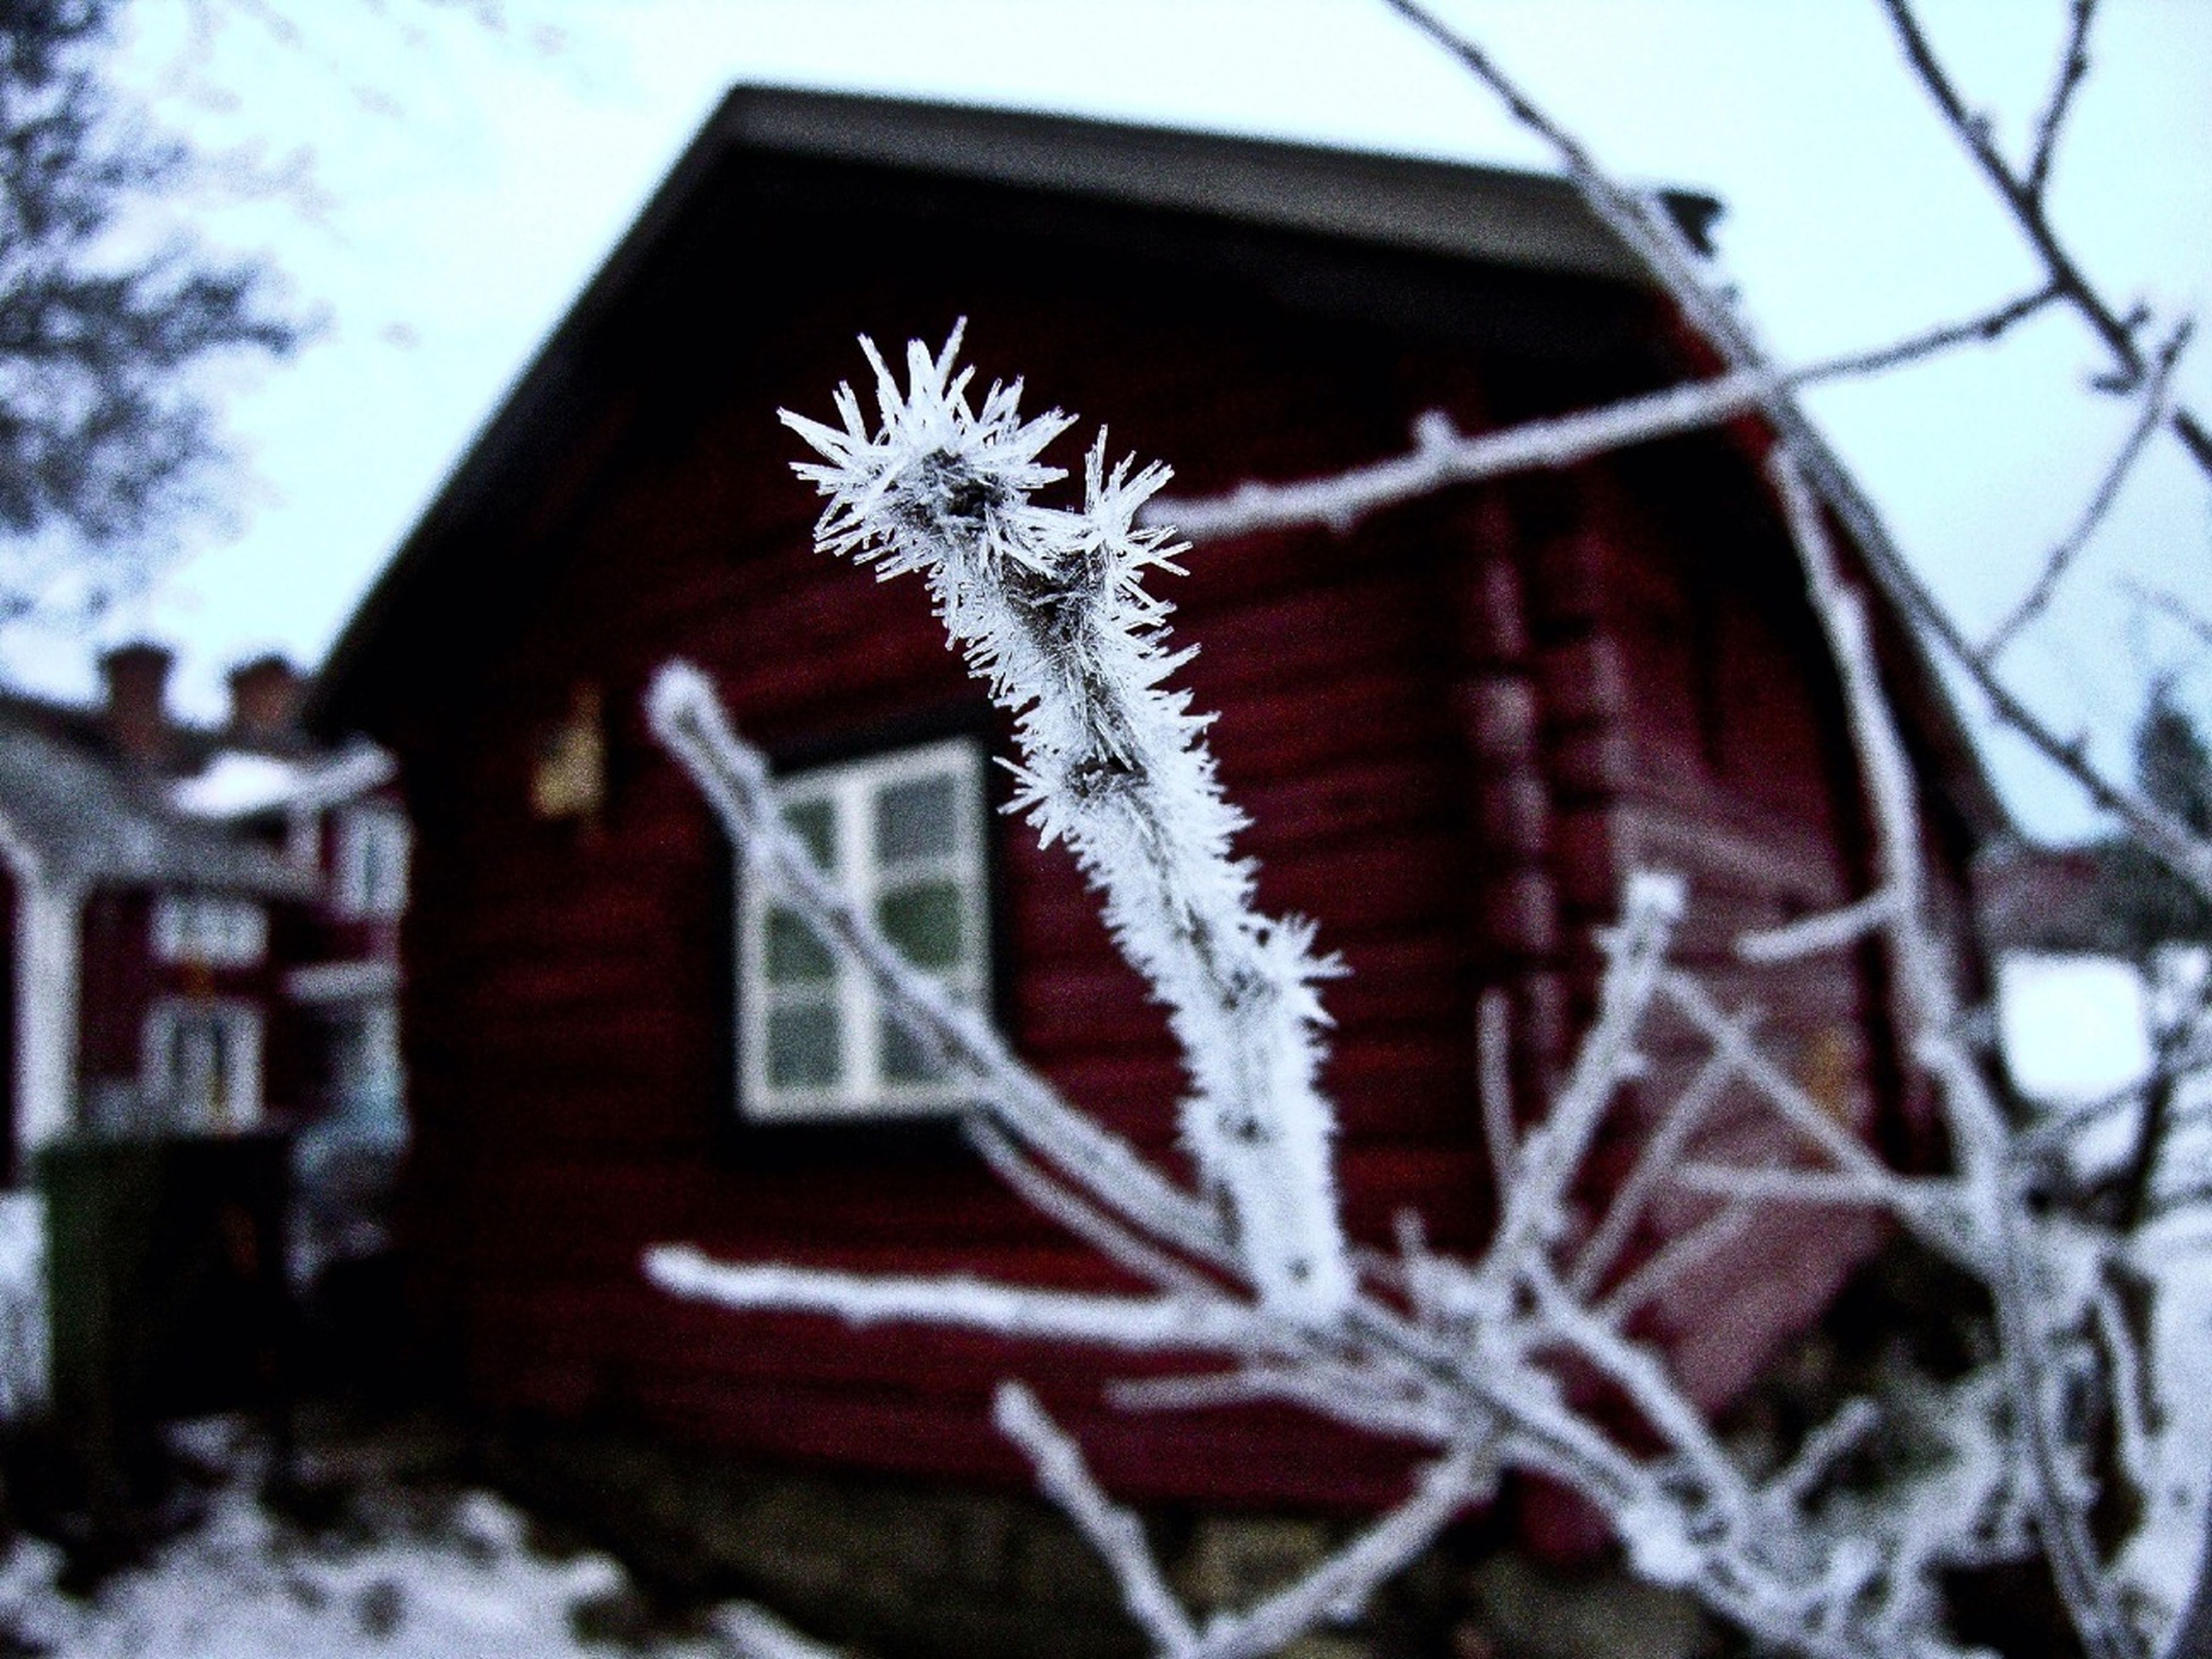 building exterior, architecture, built structure, low angle view, house, sky, tree, bare tree, winter, growth, day, nature, outdoors, plant, snow, branch, no people, window, residential structure, focus on foreground